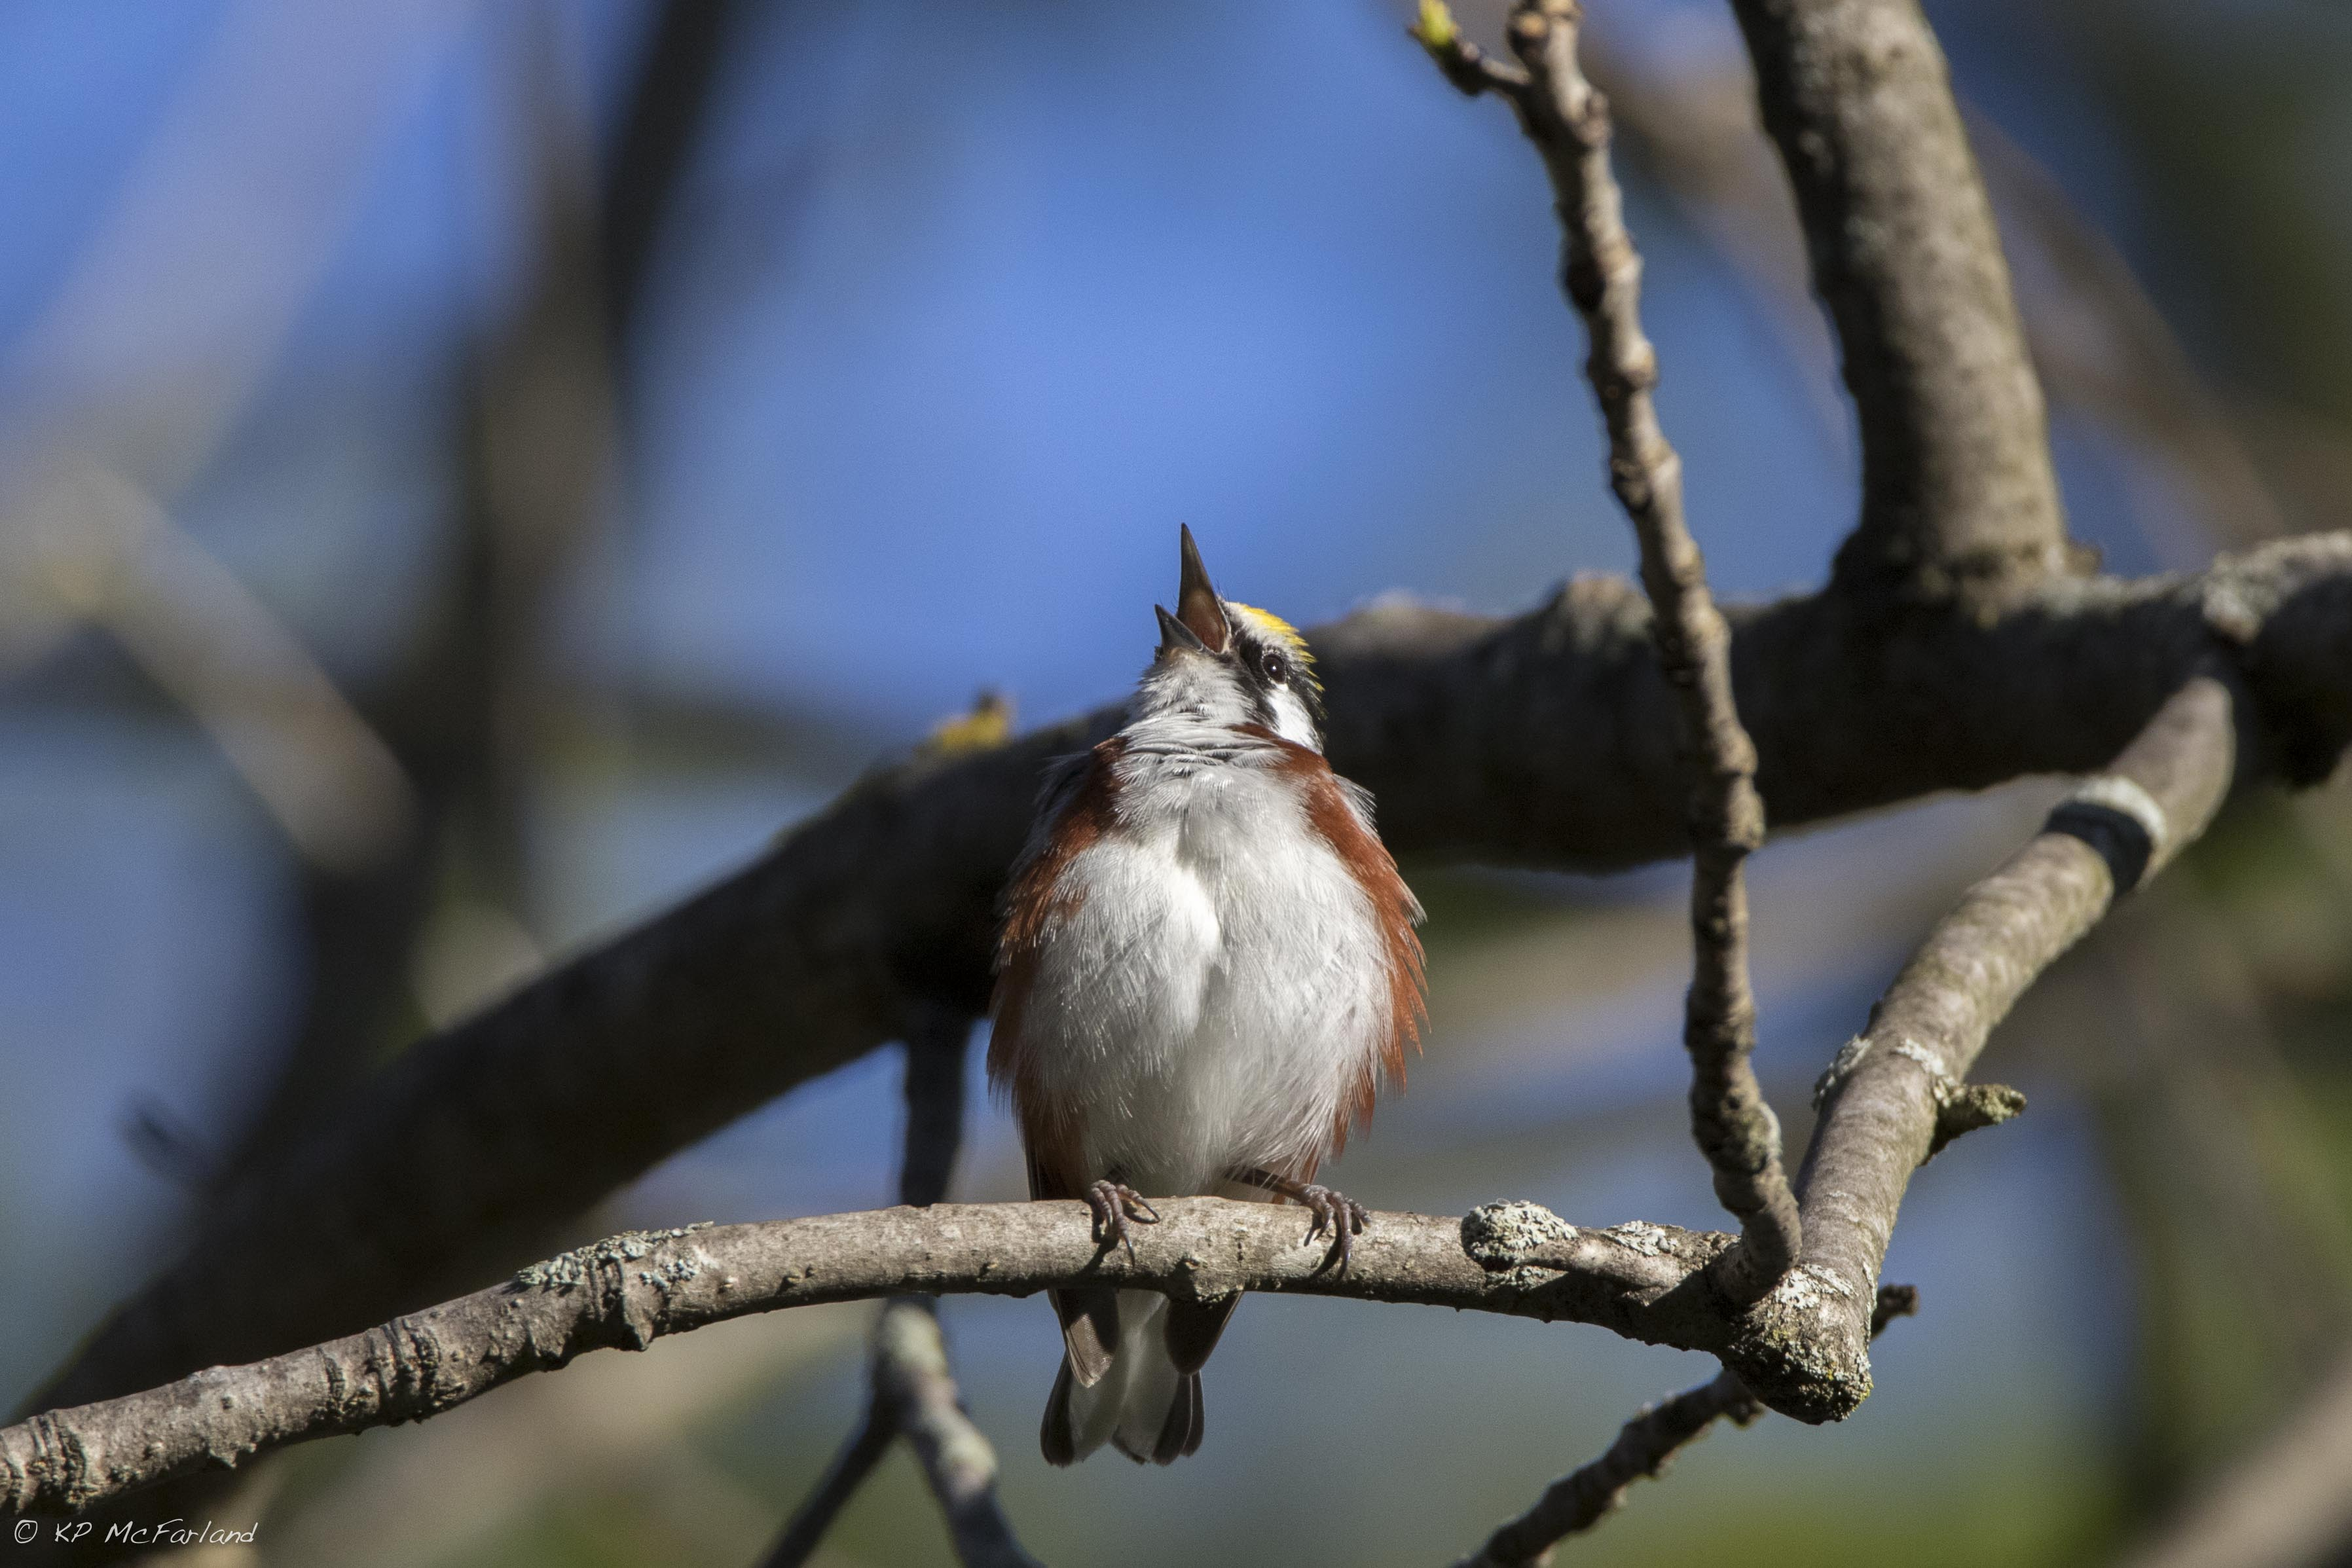 Migratory bird on a tree branch